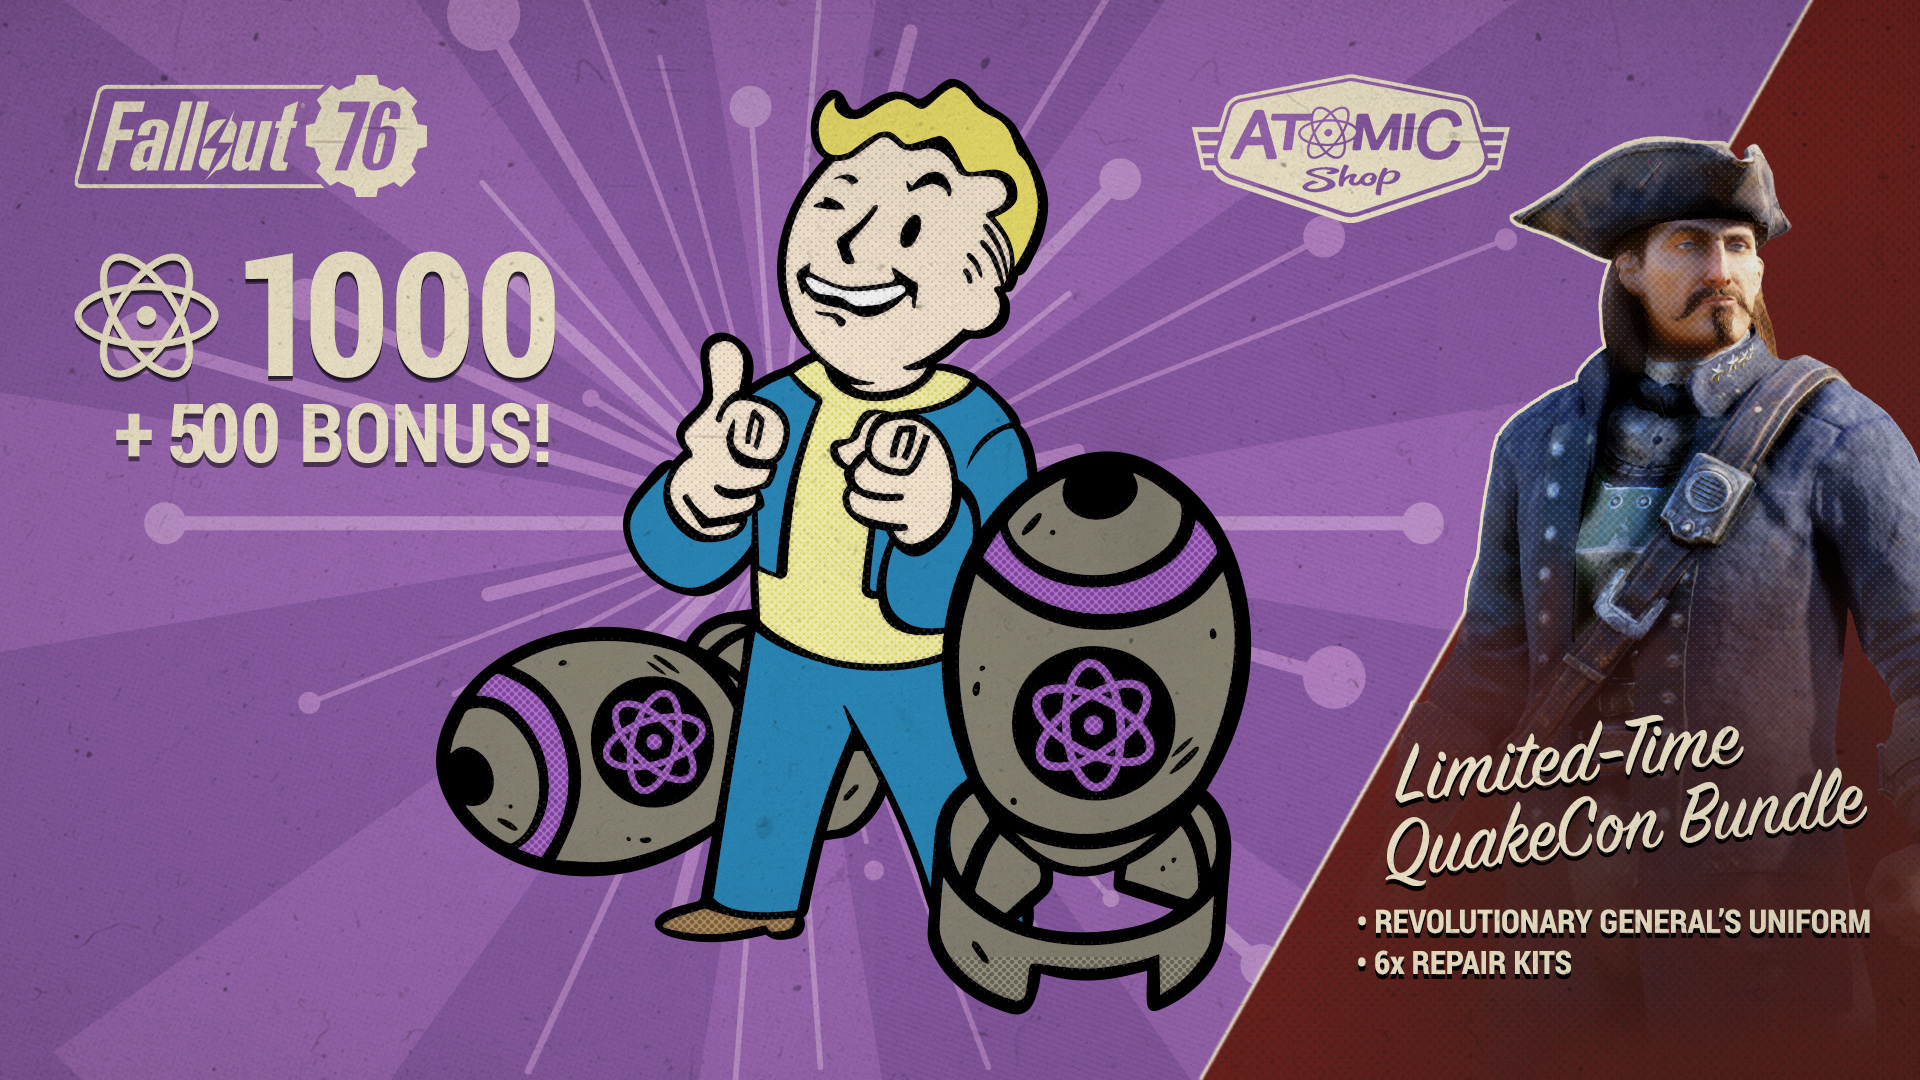 Fallout 76 | Atomic Shop: Patch 10 5 Items and Sales (July 9)